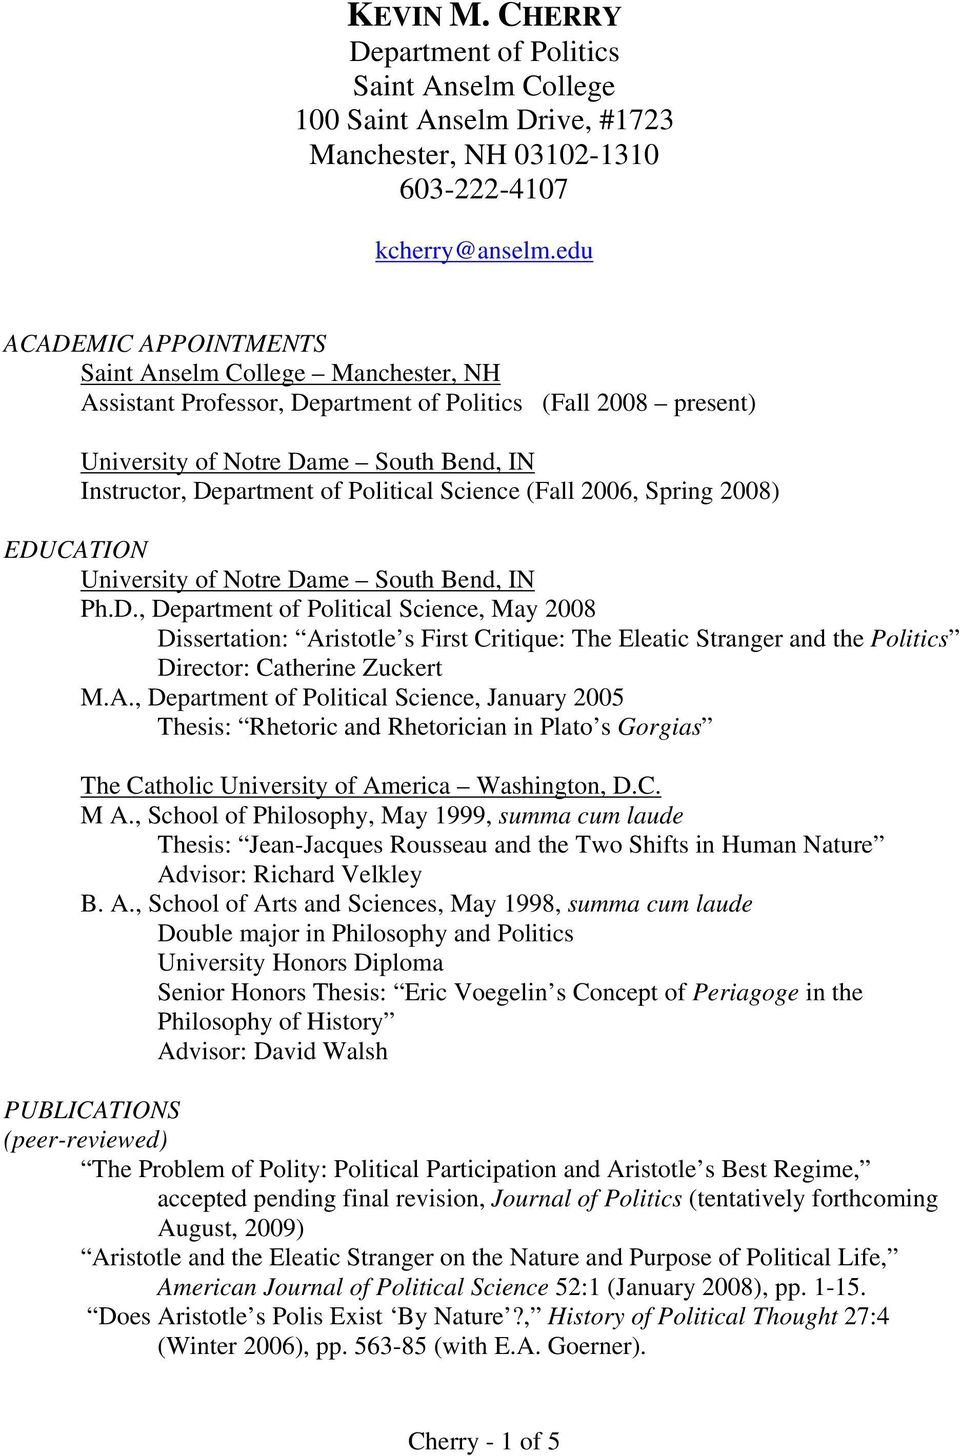 Political Science (Fall 2006, Spring 2008) EDUCATION University of Notre Dame South Bend, IN Ph.D., Department of Political Science, May 2008 Dissertation: Aristotle s First Critique: The Eleatic Stranger and the Politics Director: Catherine Zuckert M.